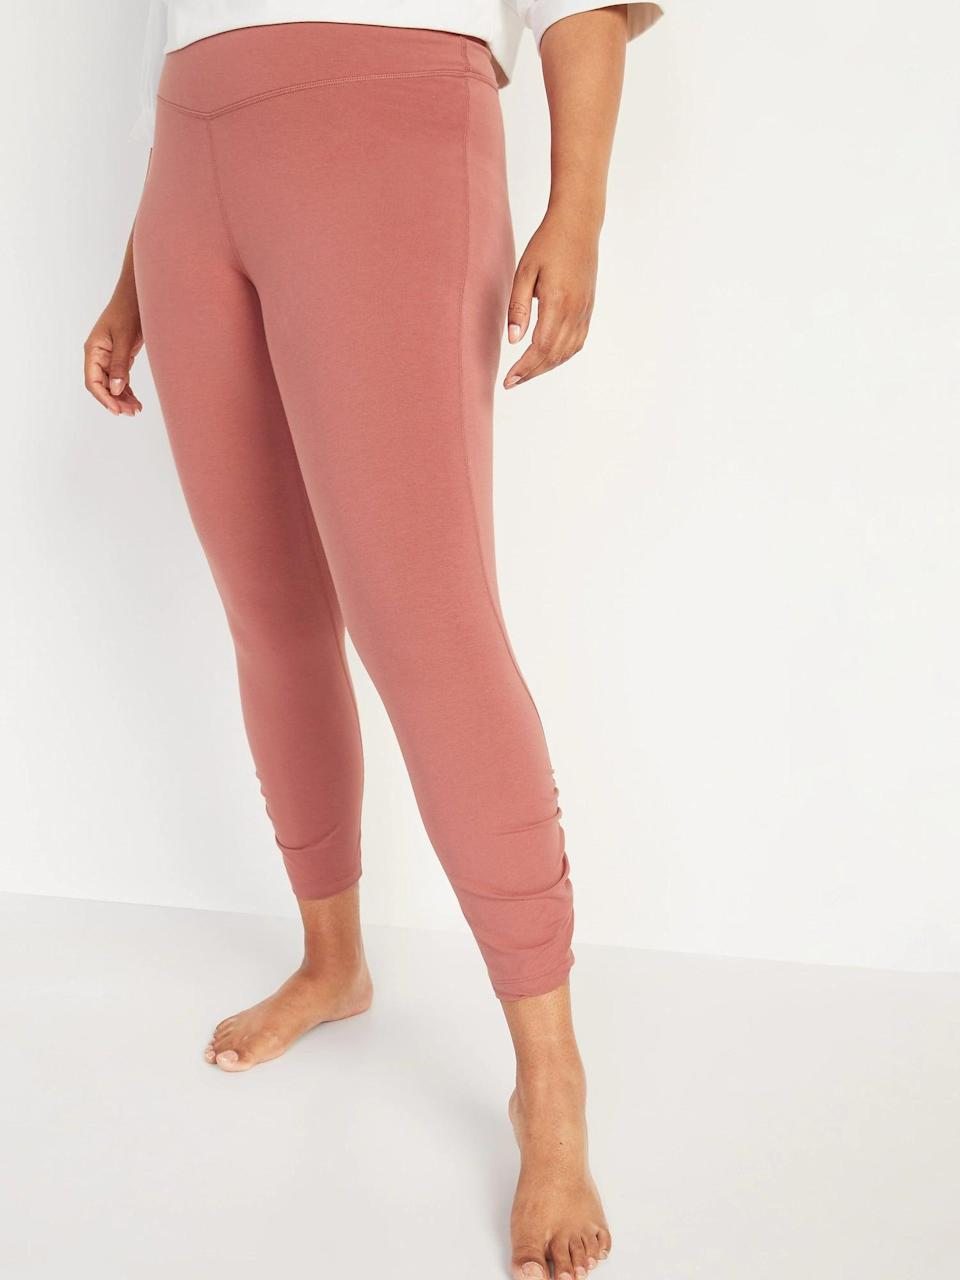 <p>I can't get enough pink, so I opted for these <span>Old Navy Extra High-Waisted PowerChill Ruched 7/8-Length Leggings in Dusty Red</span> ($30).</p>